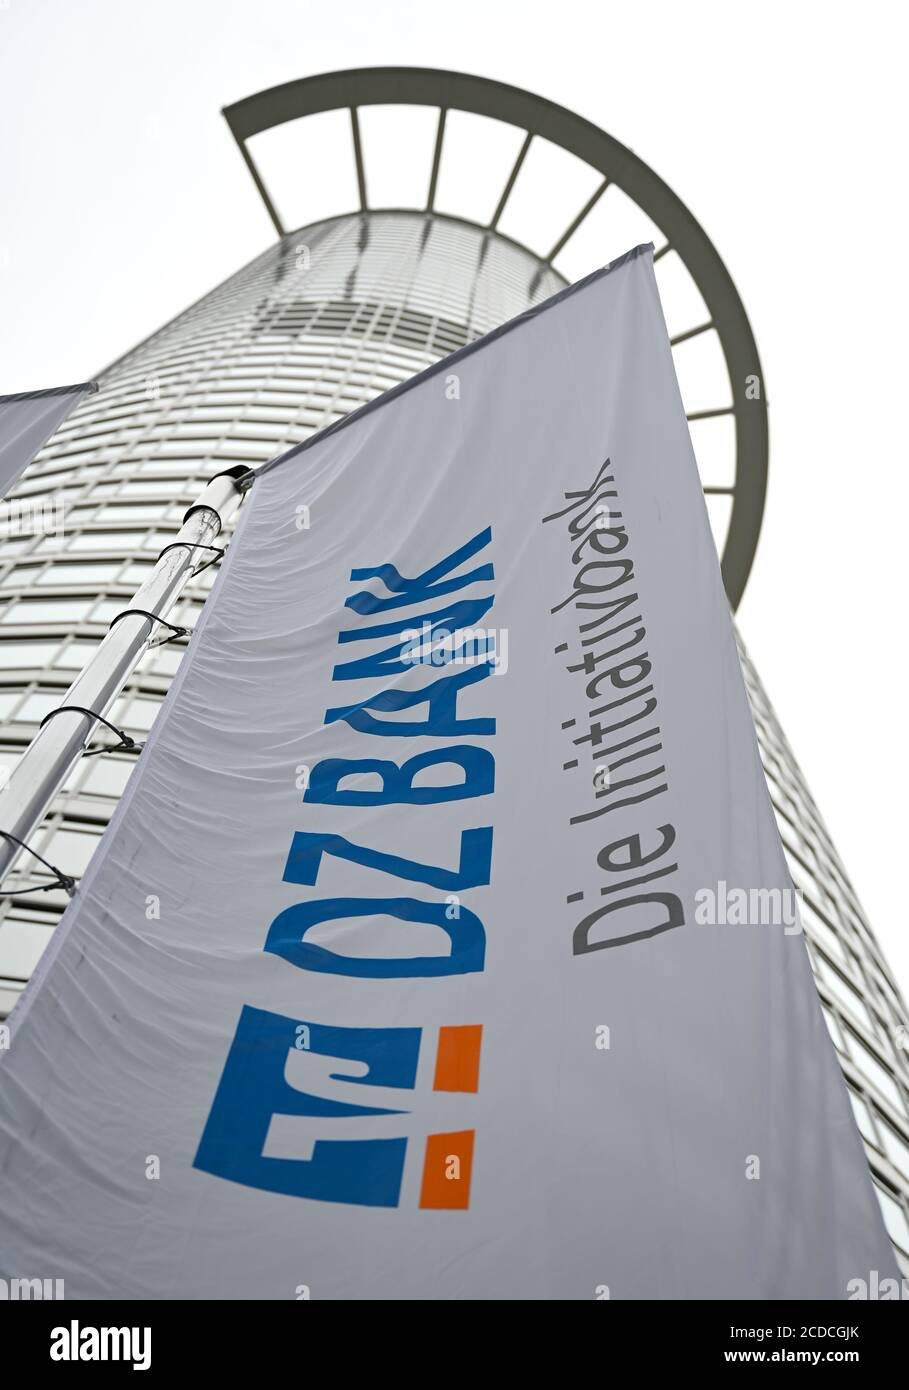 "25 August 2020, Hessen, Frankfurt/Main: A flag with the inscription ""DZ Bank - Die Initiativbank"" hangs in front of the office tower ""Westend 1"", also known as the ""Kronenhochhaus"", which belongs to the headquarters of DZ Bank. The Deutsche Zentral-Genossenschaftsbank (DZ Bank) presents figures for the first half of 2020 on 28.08.2020. Photo: Arne Dedert/dpa Stock Photo"